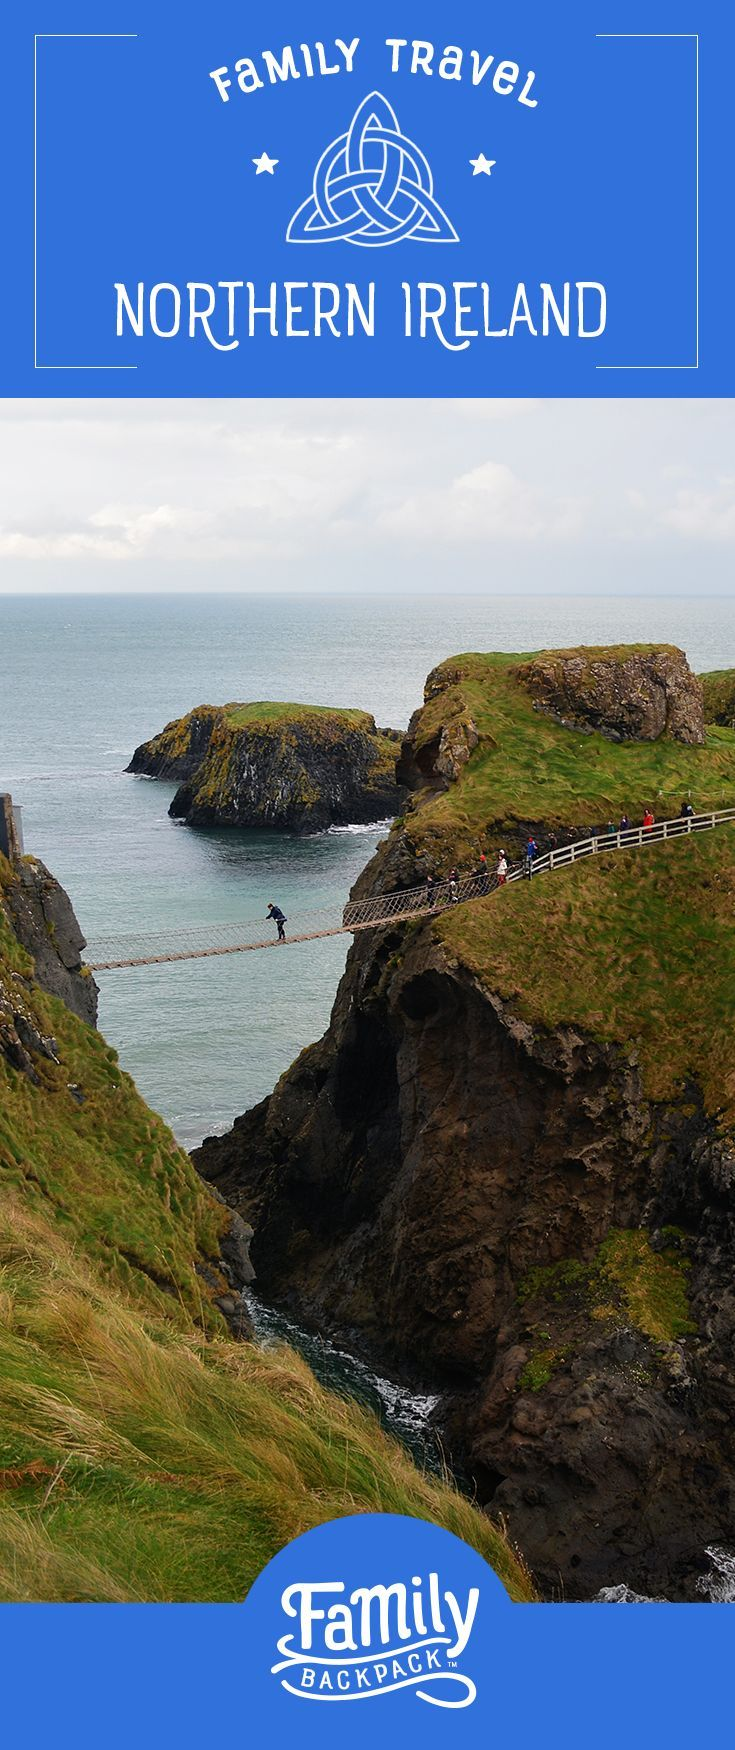 Family Travel in #Northern Ireland-  Prepare to add this beauty to your family travel #bucketlist! Castles, overnight ferries and more! Be sure to check out our #tips when #planning your next trip to Ireland. We cover #placestovisit, like the titanic in #Belfast and other adventures to keep your little ones happy!